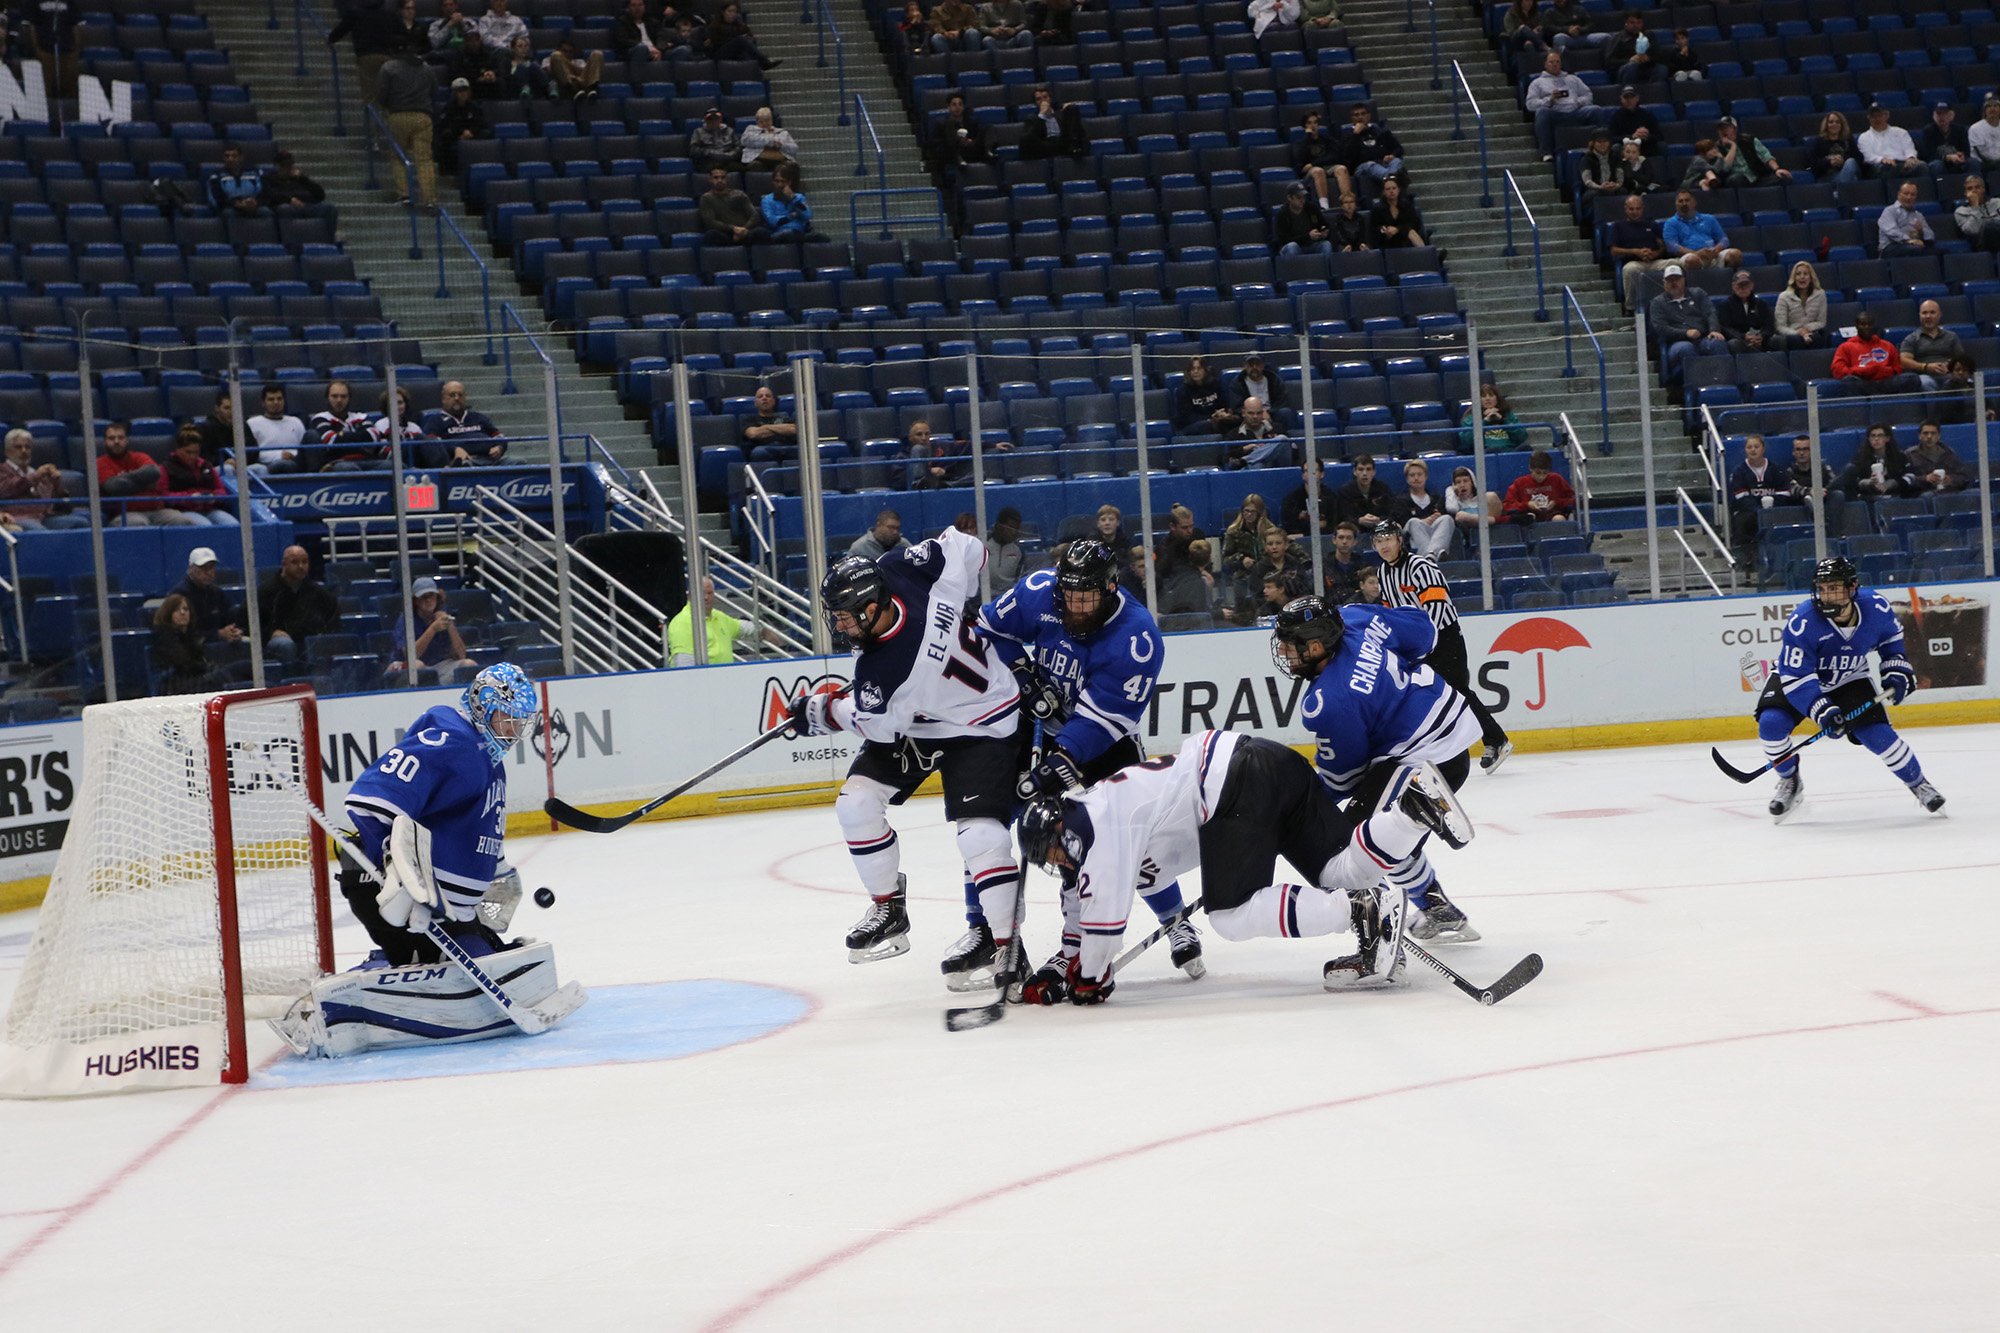 UConn defeated Alabama Huntsville in the season home opener 4-0 on Saturday, Oct. 9, 2016 at the XL Center in Hartford. The Huskies swept Alabama 10-0 with a combined score for the weekend. The Huskies fell to the Quinnipiac Bobcats 5-2.(Ruohan Li/ The Daily Campus)